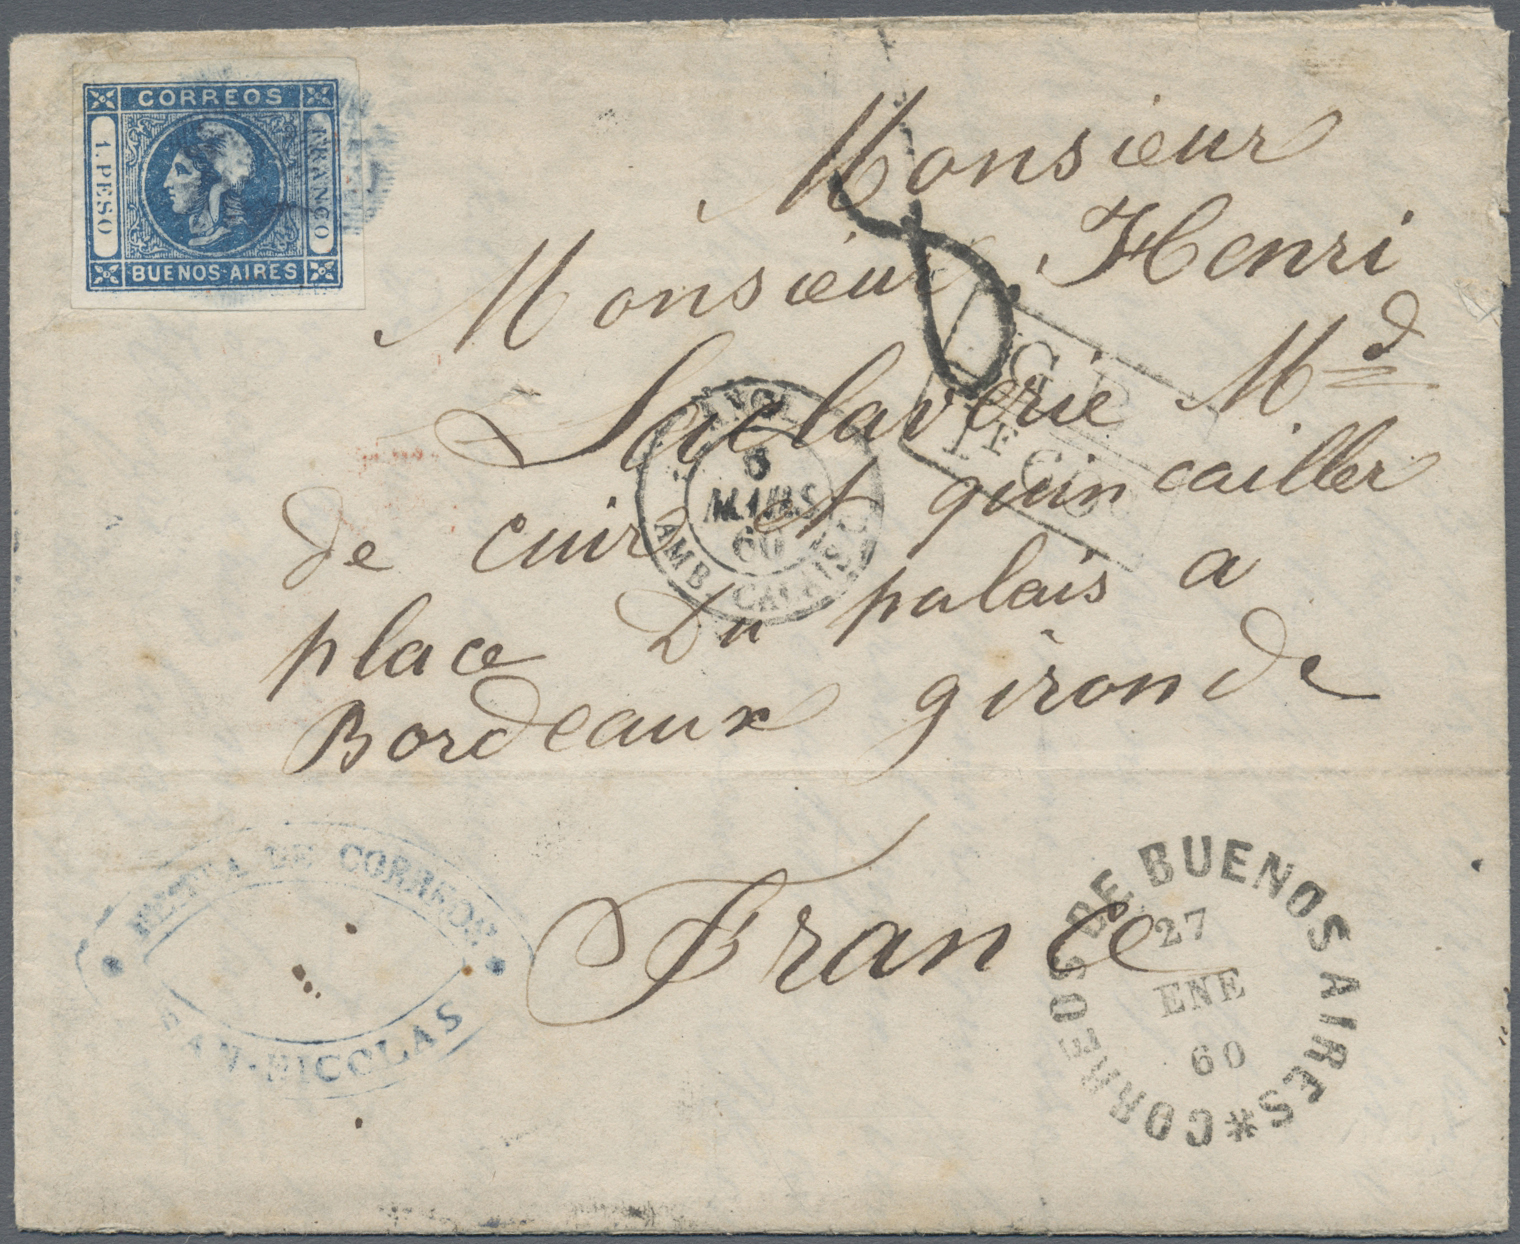 Lot 563 - Argentinien - Provinzen: Buenos Aires  -  Auktionshaus Christoph Gärtner GmbH & Co. KG Auction #41 Special auction part one